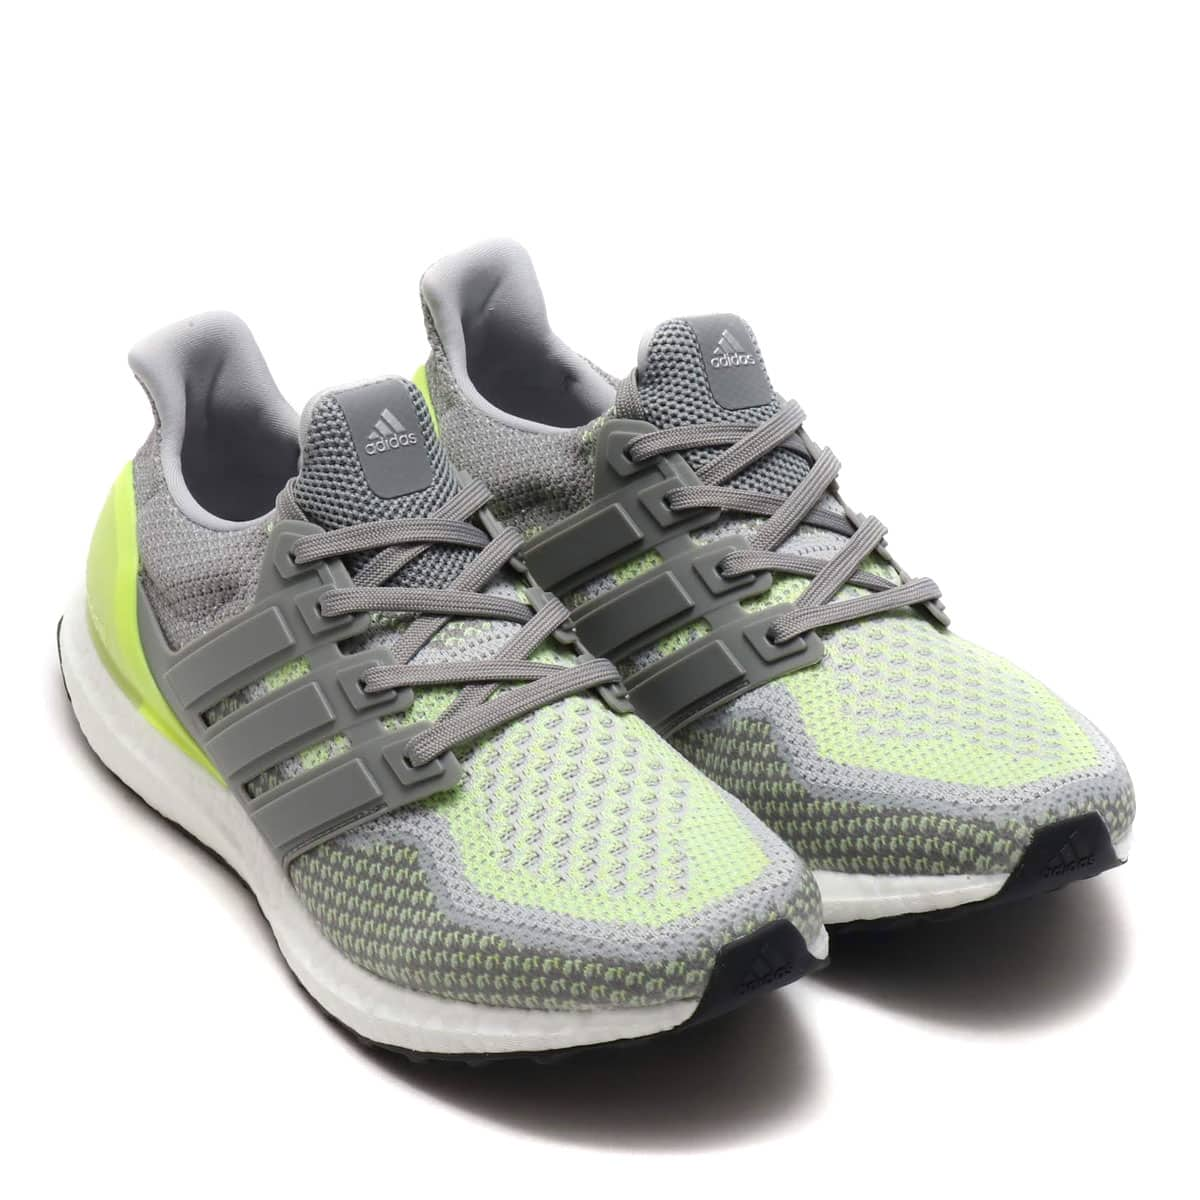 adidas UltraBOOST CH SOLID GREY/CH SOLID GREY/SOLAR YELLOW 19SS-I_photo_large